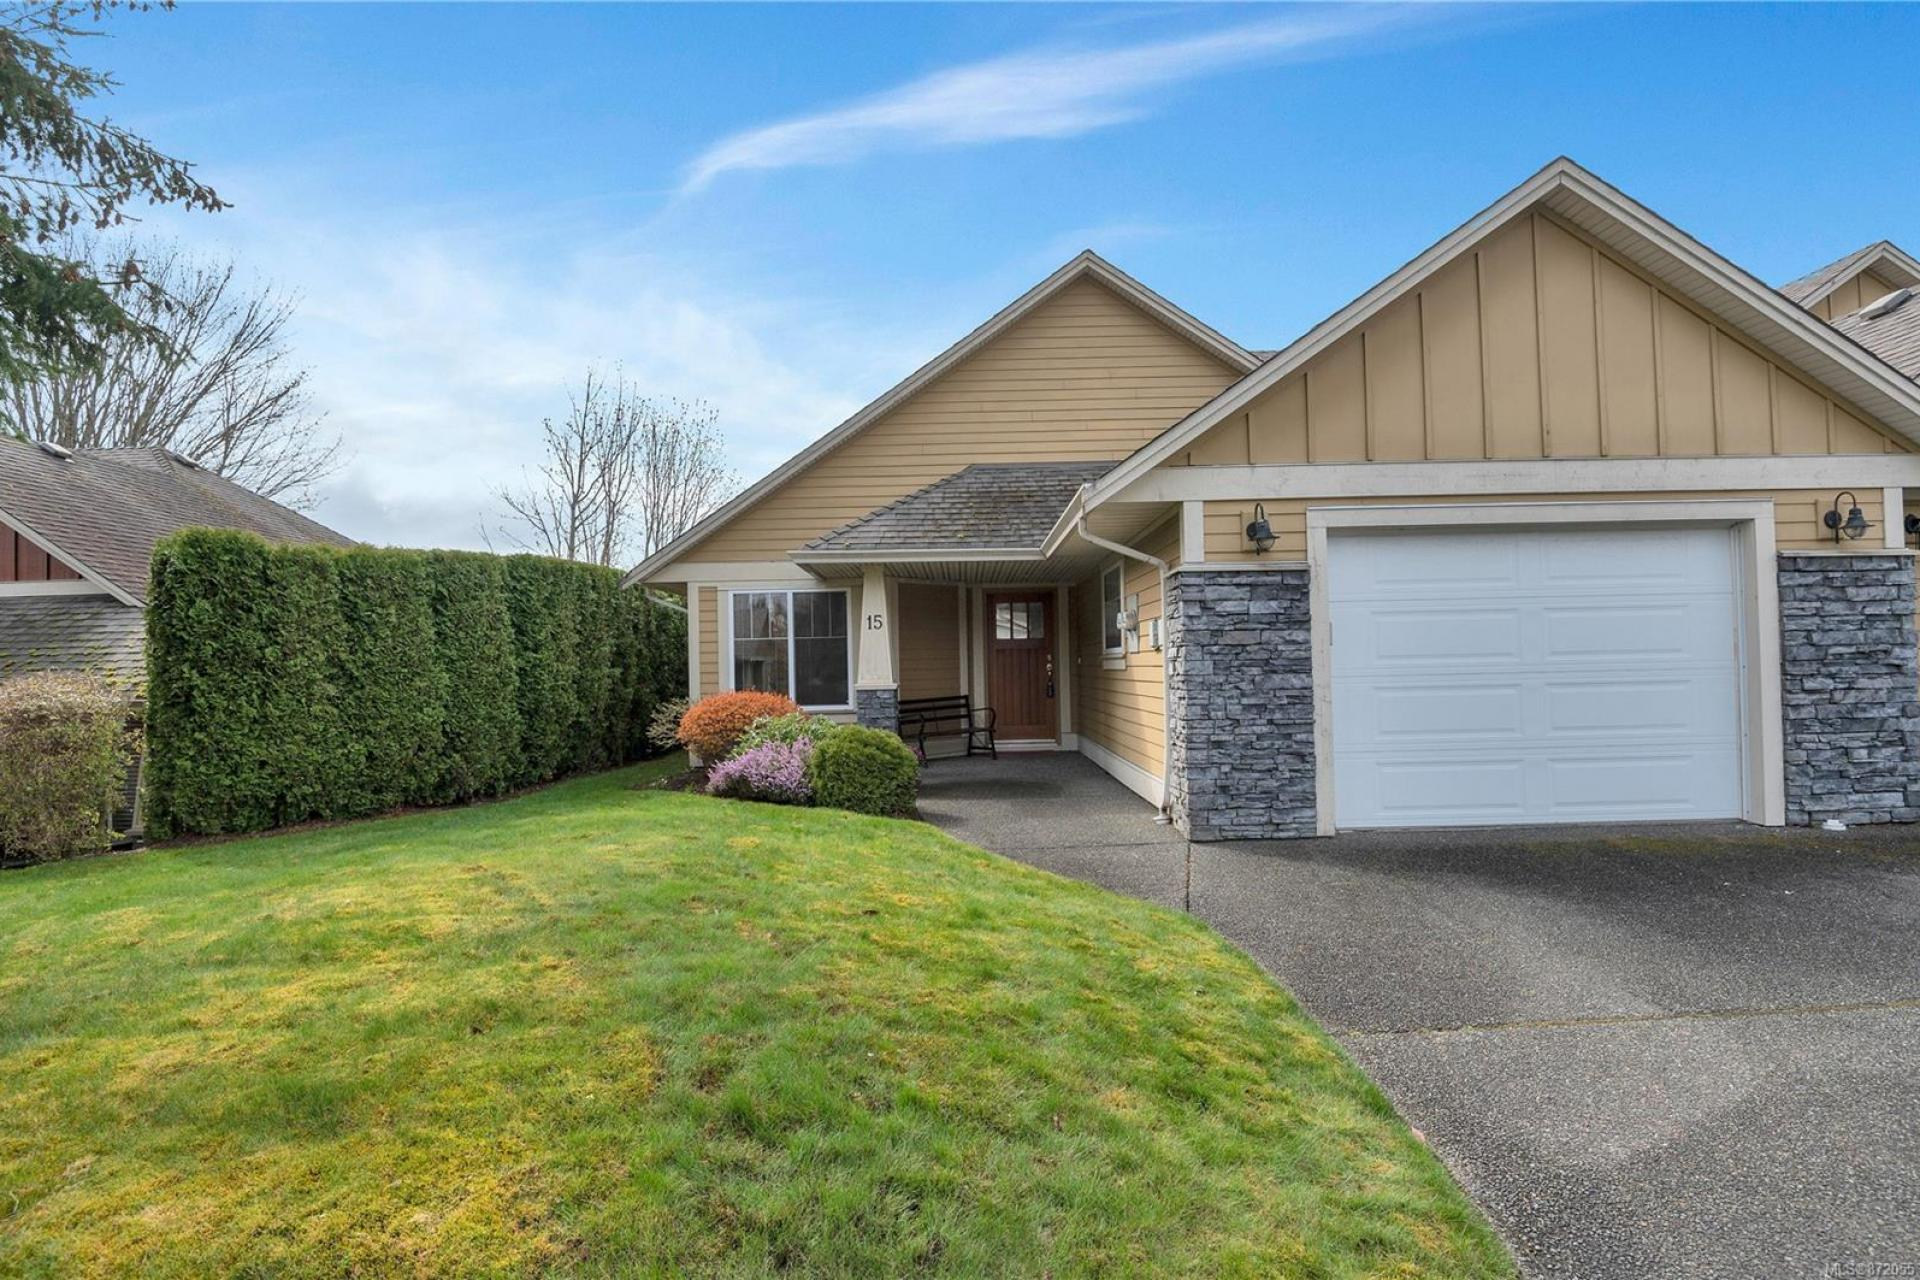 15 - 769 Merecroft Road, Campbell River Central, Campbell River